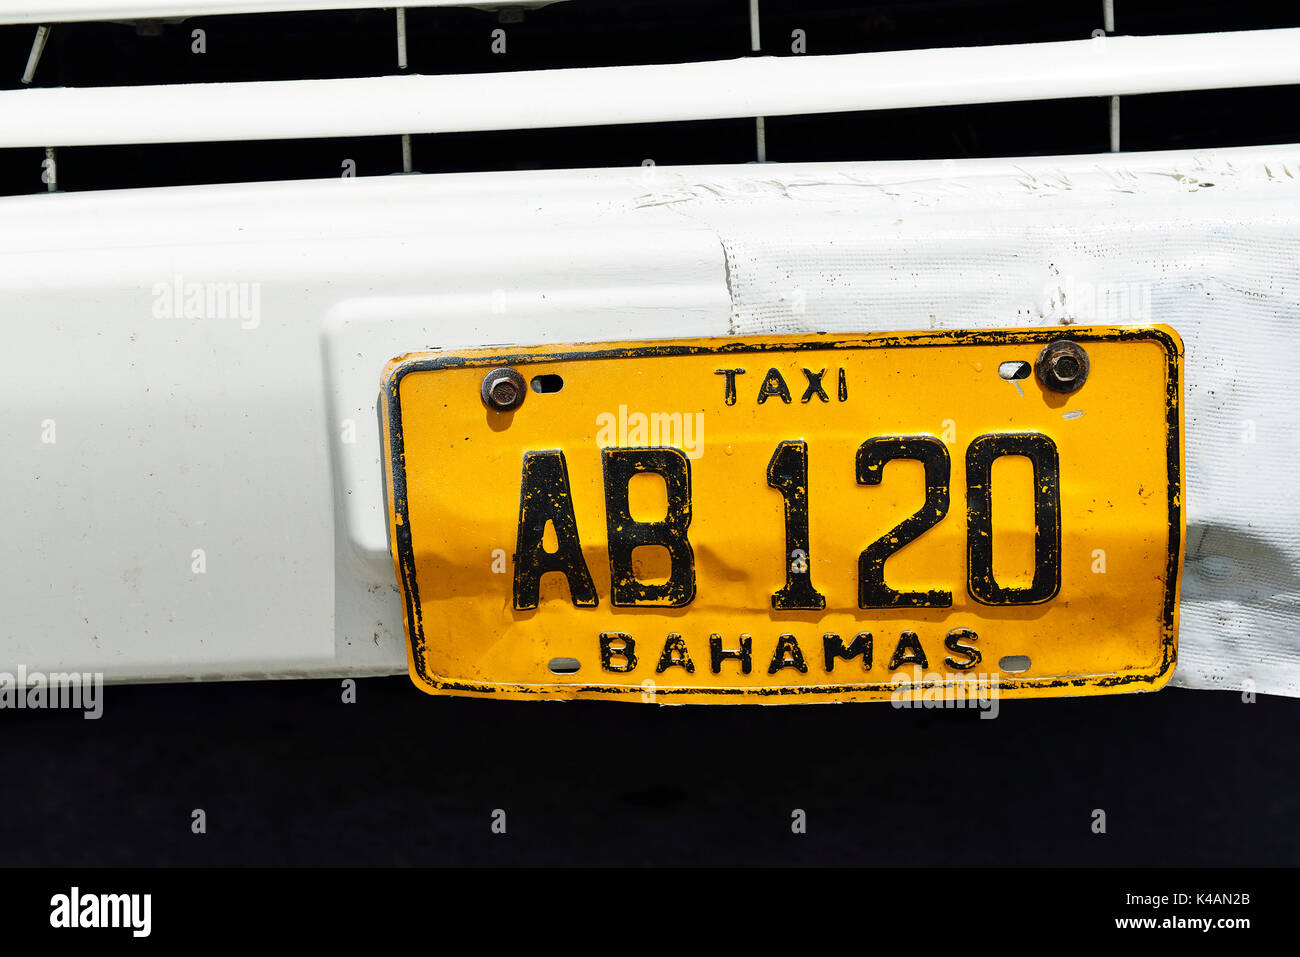 Number plate of a taxi, Abacos Islands, Bahamas - Stock Image